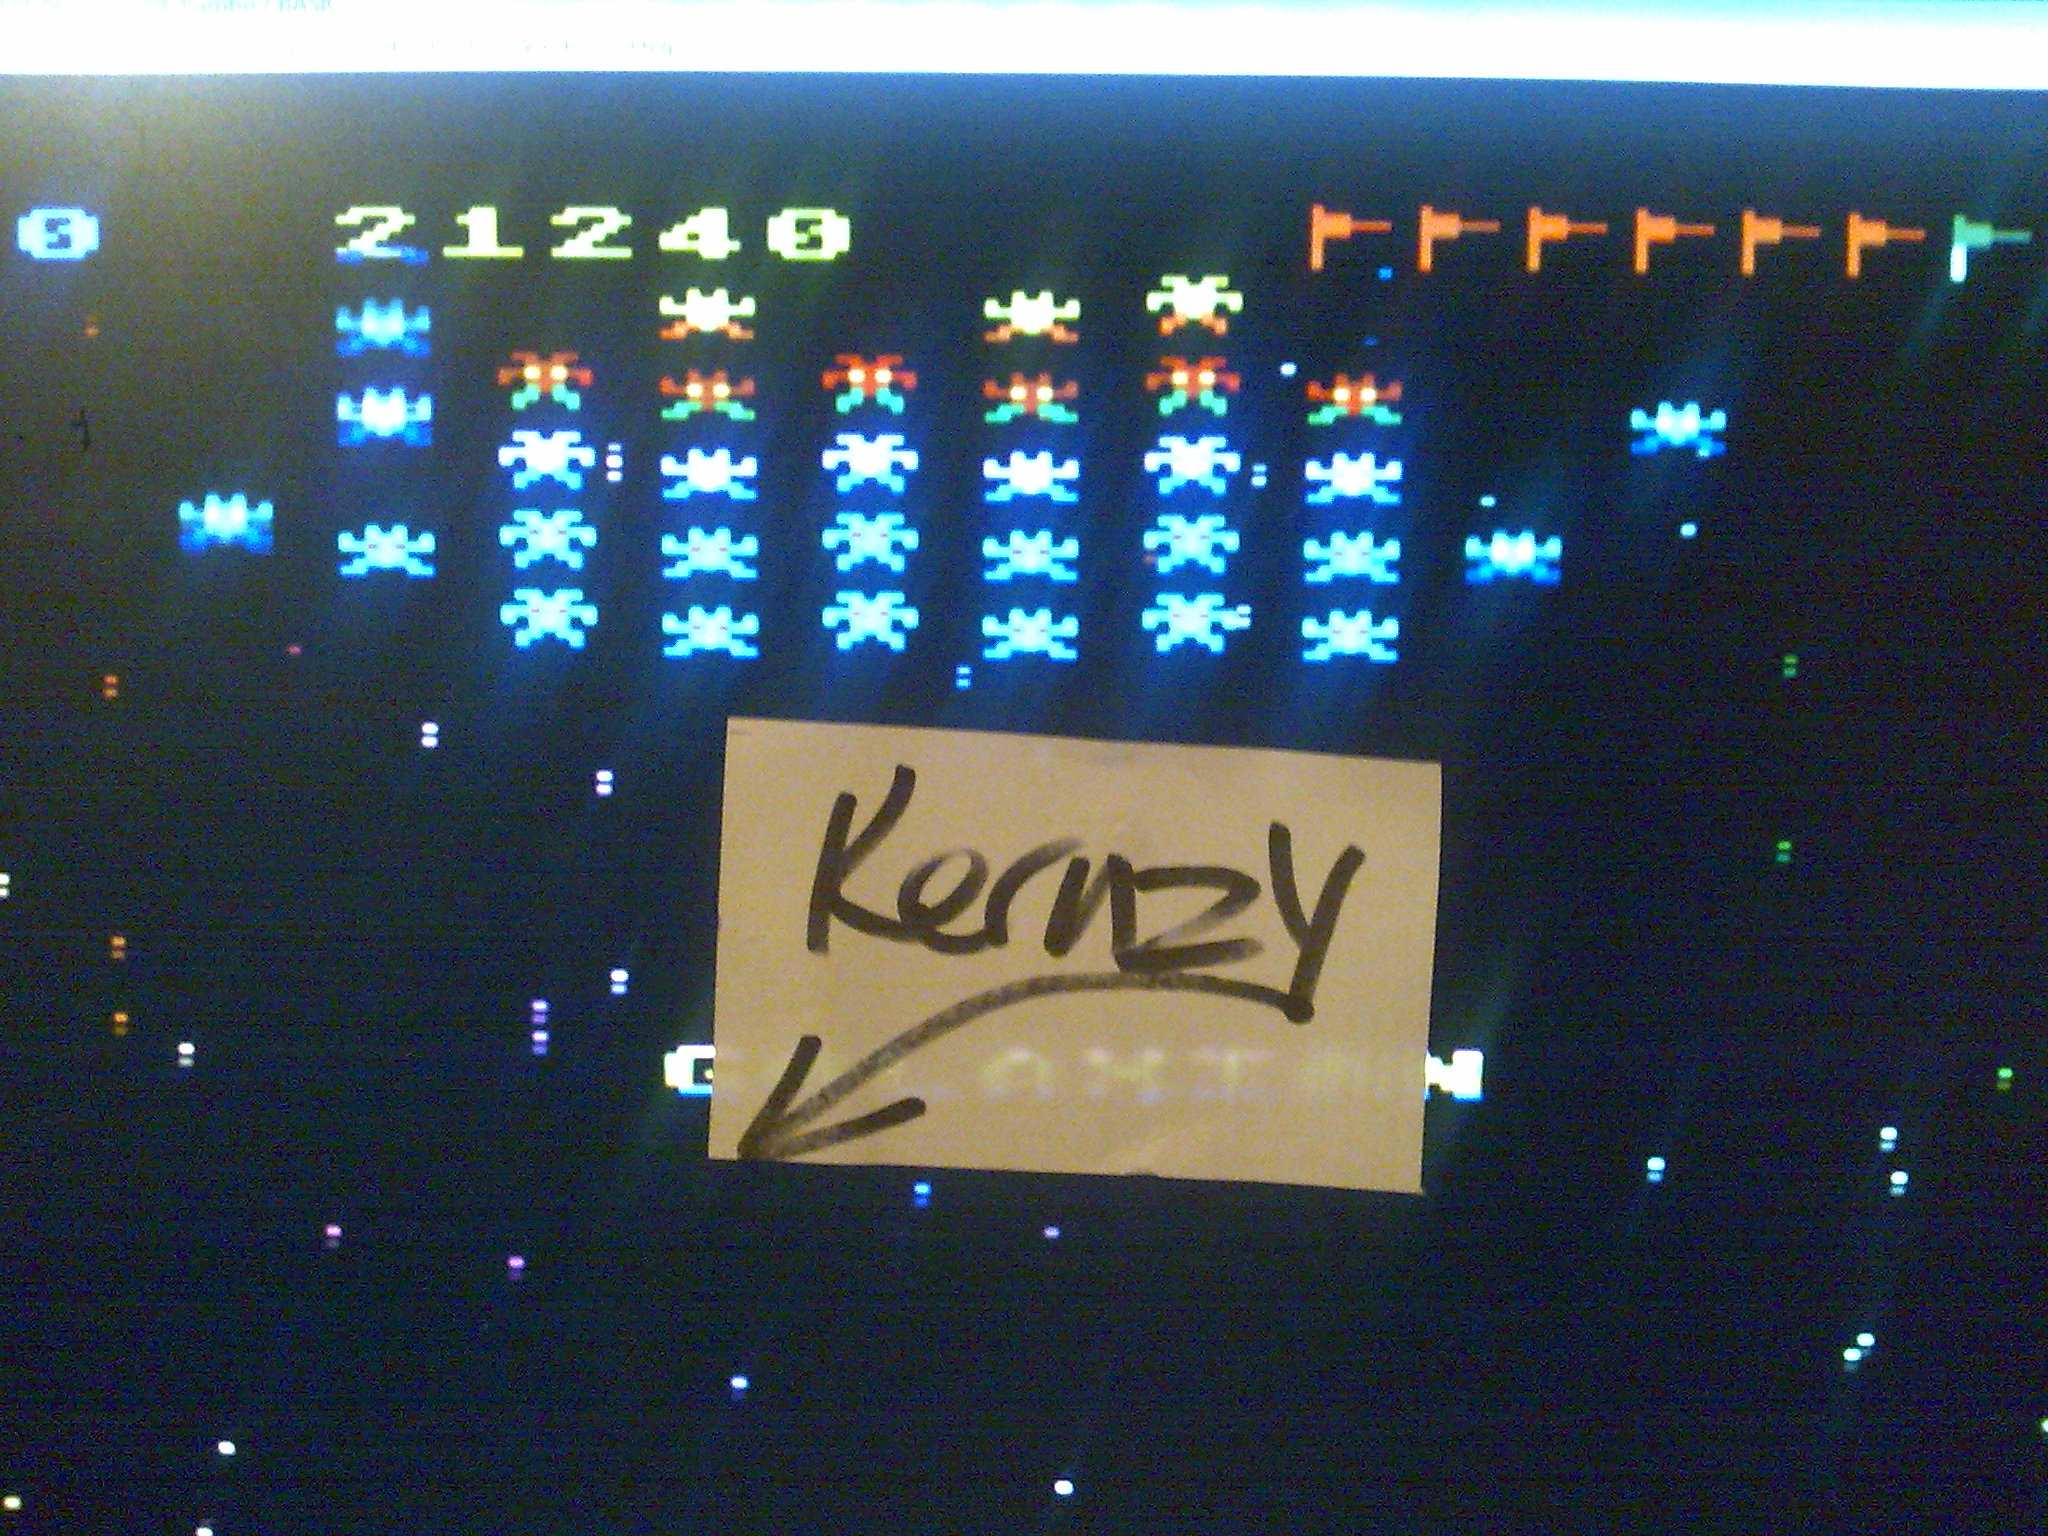 kernzy: Galaxian (Atari 400/800/XL/XE Emulated) 21,240 points on 2014-10-15 12:01:21